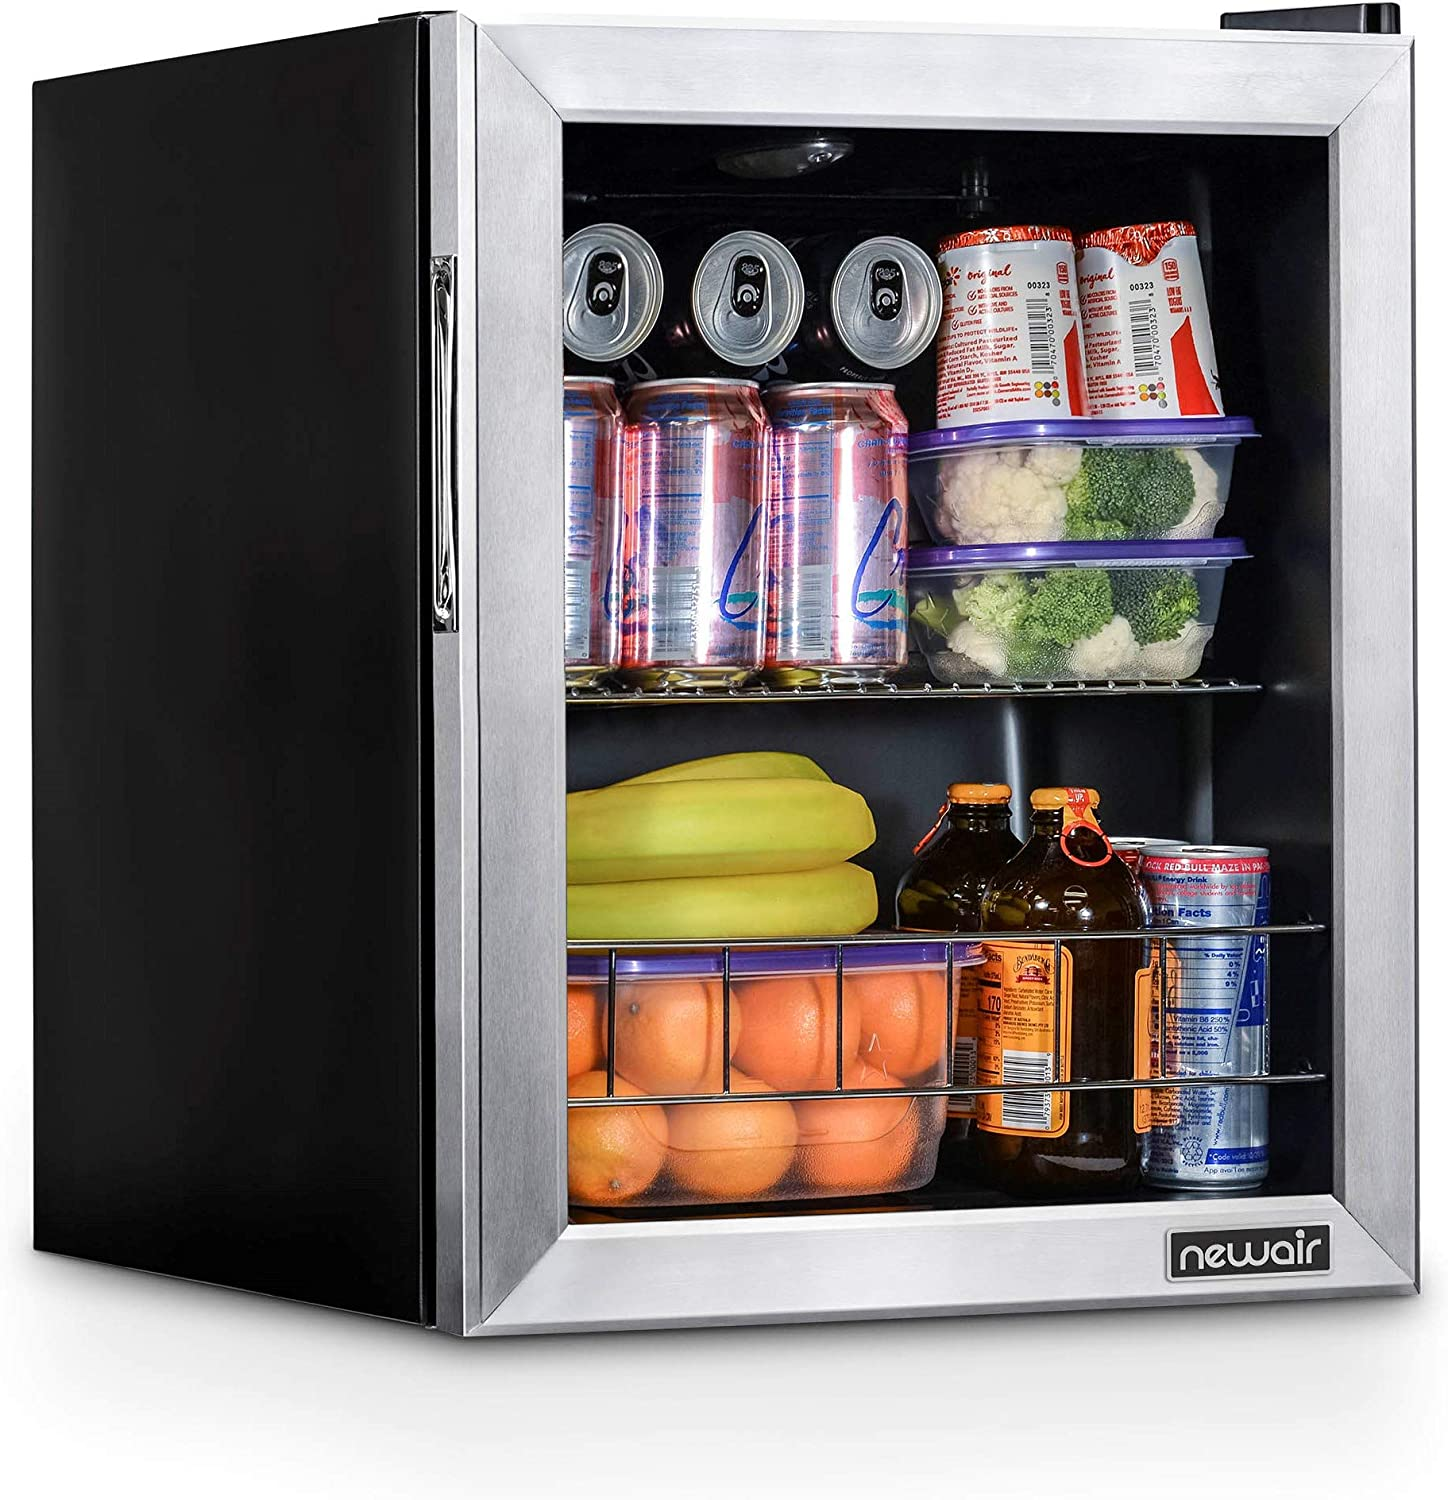 NewAir NBC060SS00 Beverage Cooler and Refrigerator, Holds up to 60 Cans, Perfect for Beer Wine or Soda